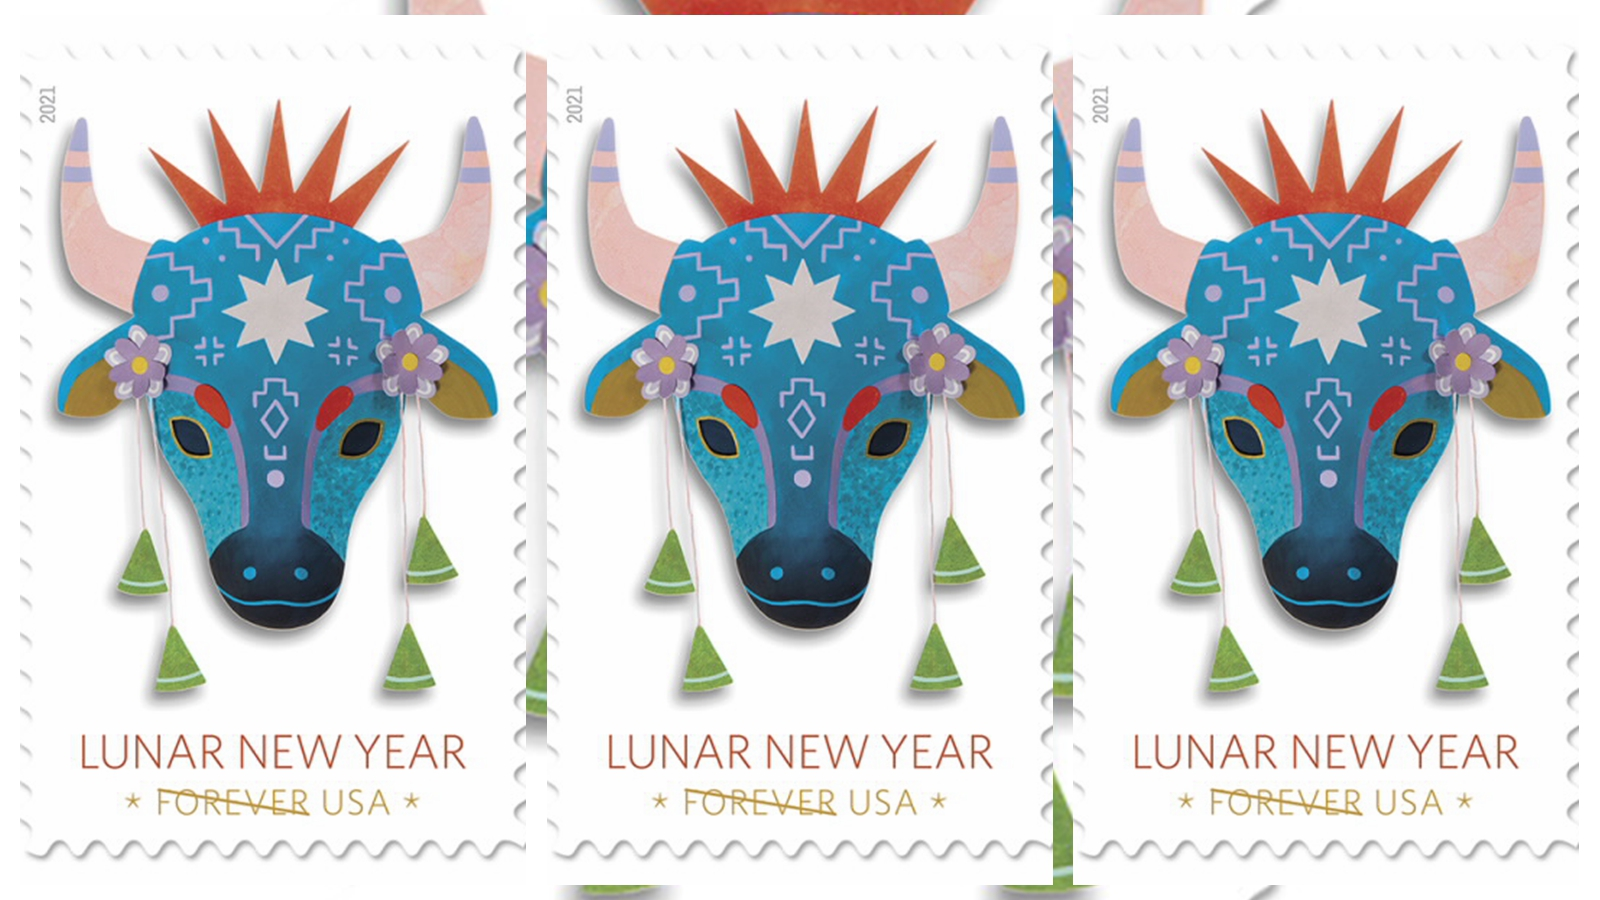 World Insights: People overseas celebrate Chinese New Year, sending wishes for Year of Ox